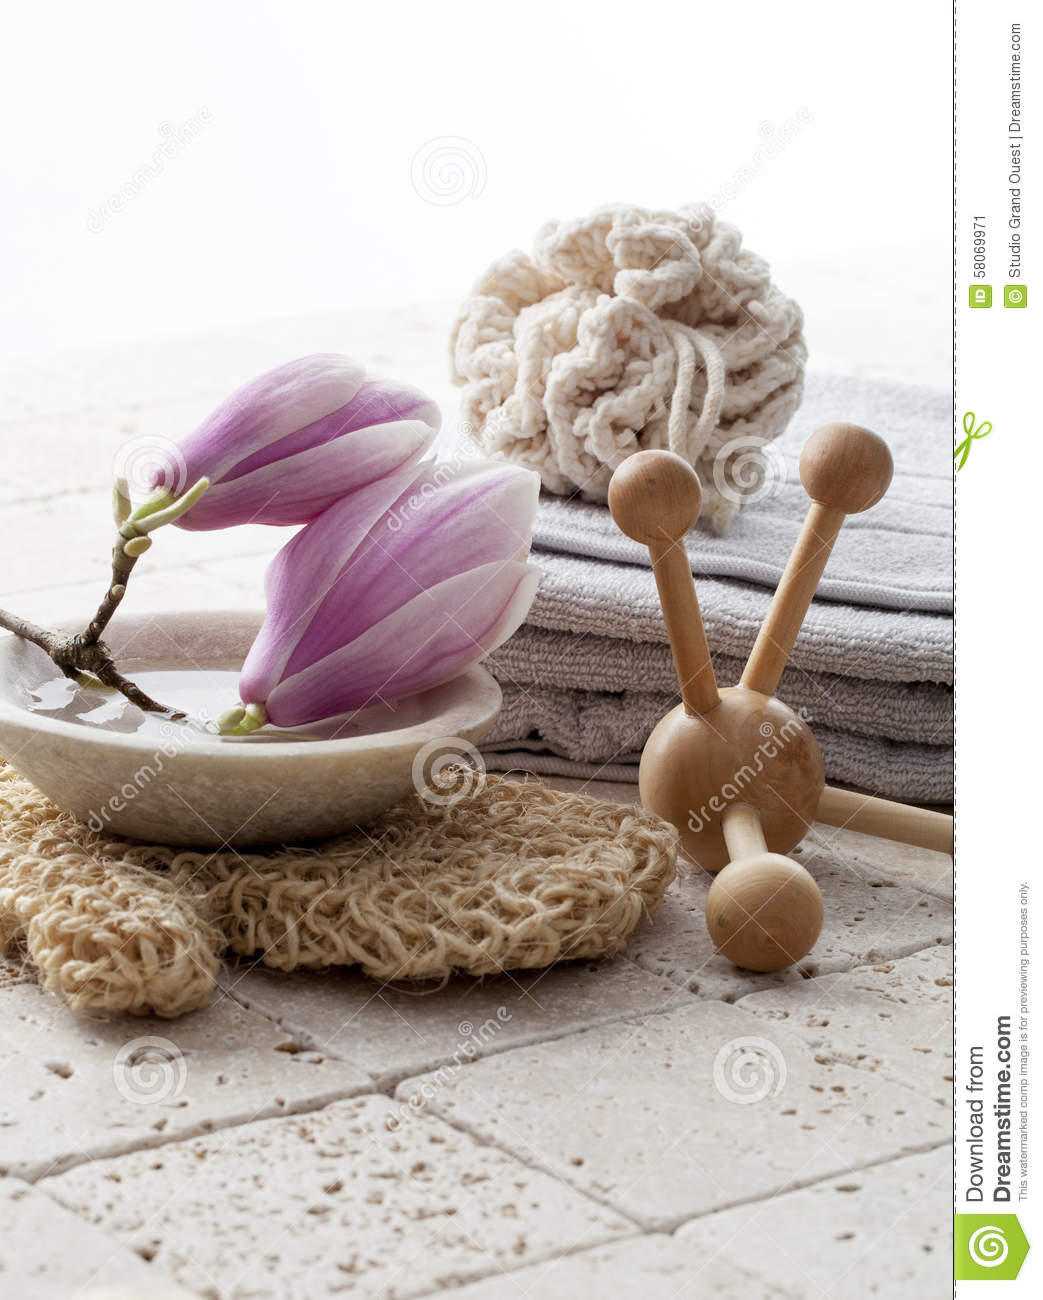 Body Care Symbols With Magnolia Flowers Stock Image Image Of Feng